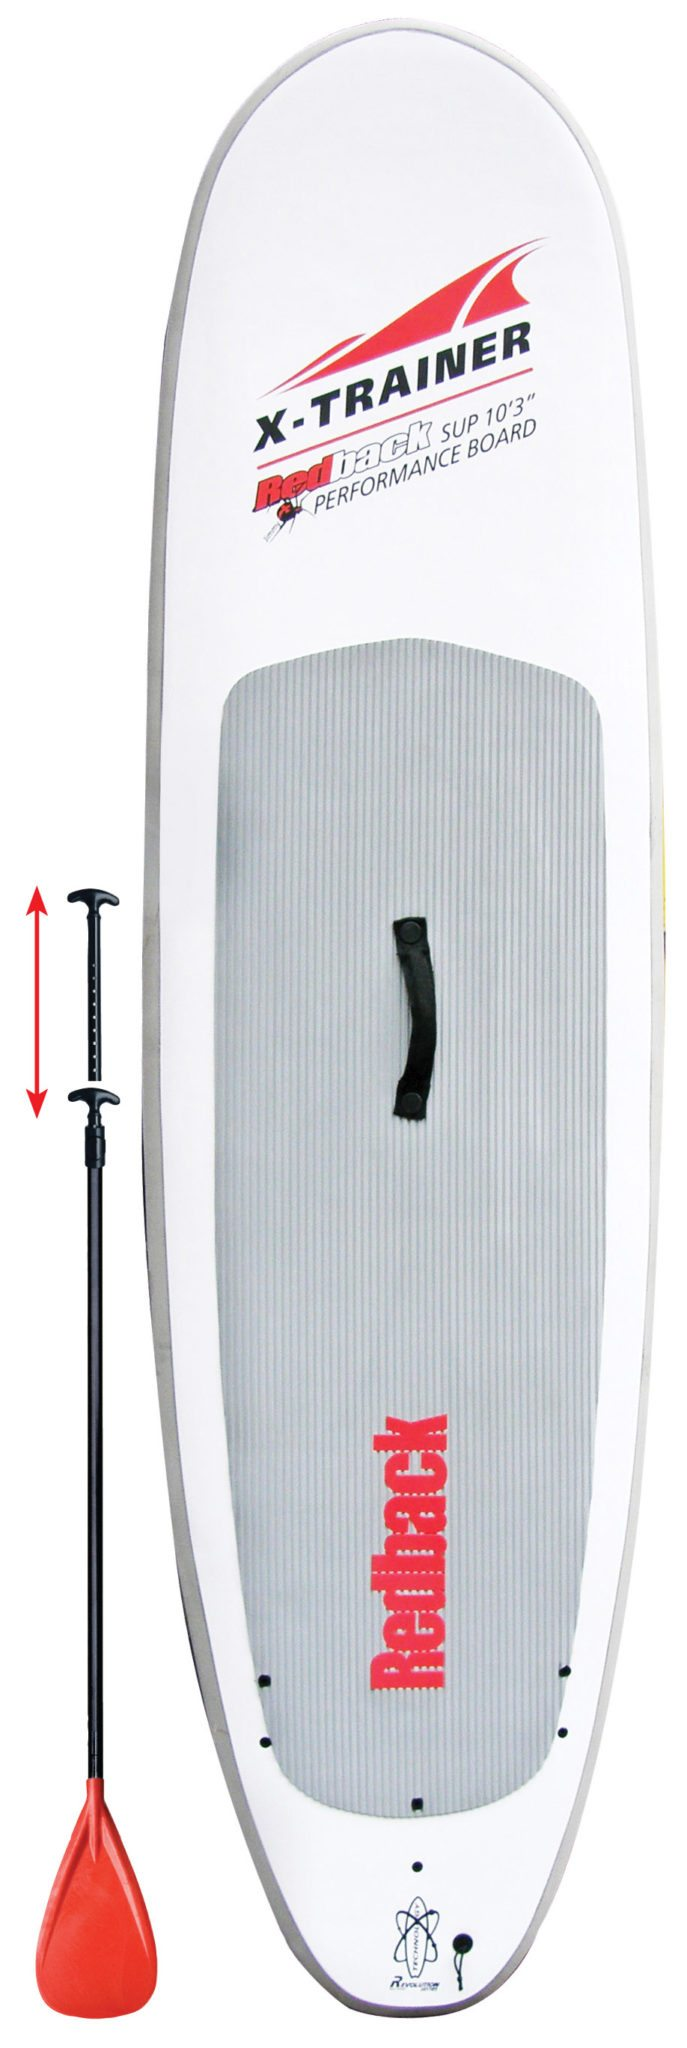 X Trainer paddle board